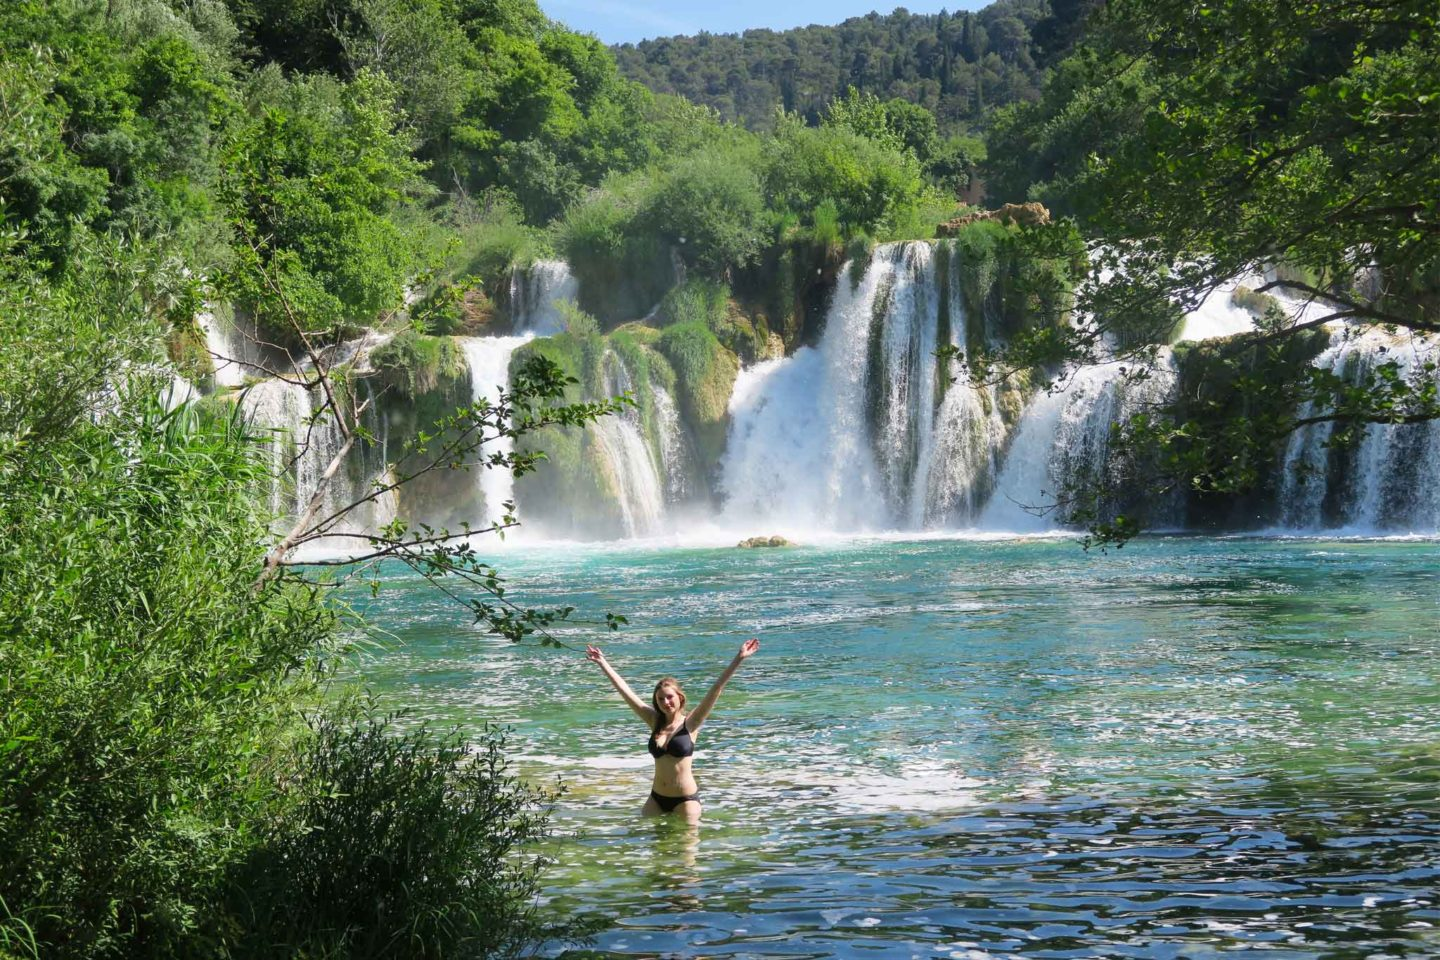 melissa carne in krka waterfall in Croatia